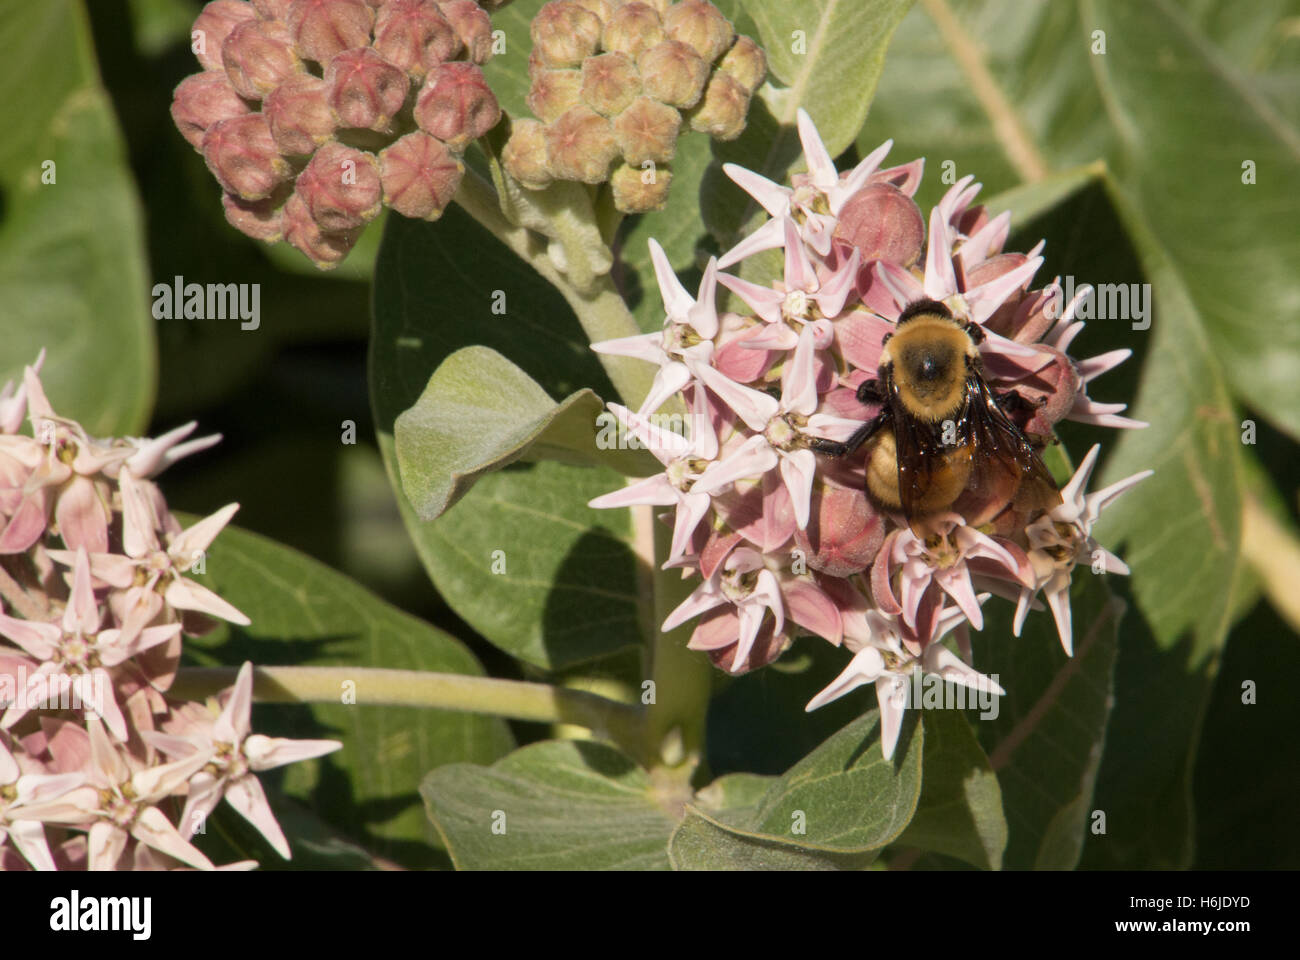 Close Up of a Honey Bee Collecting Nectar from Pink Flowers of a Common Milkweed Plant - Stock Image